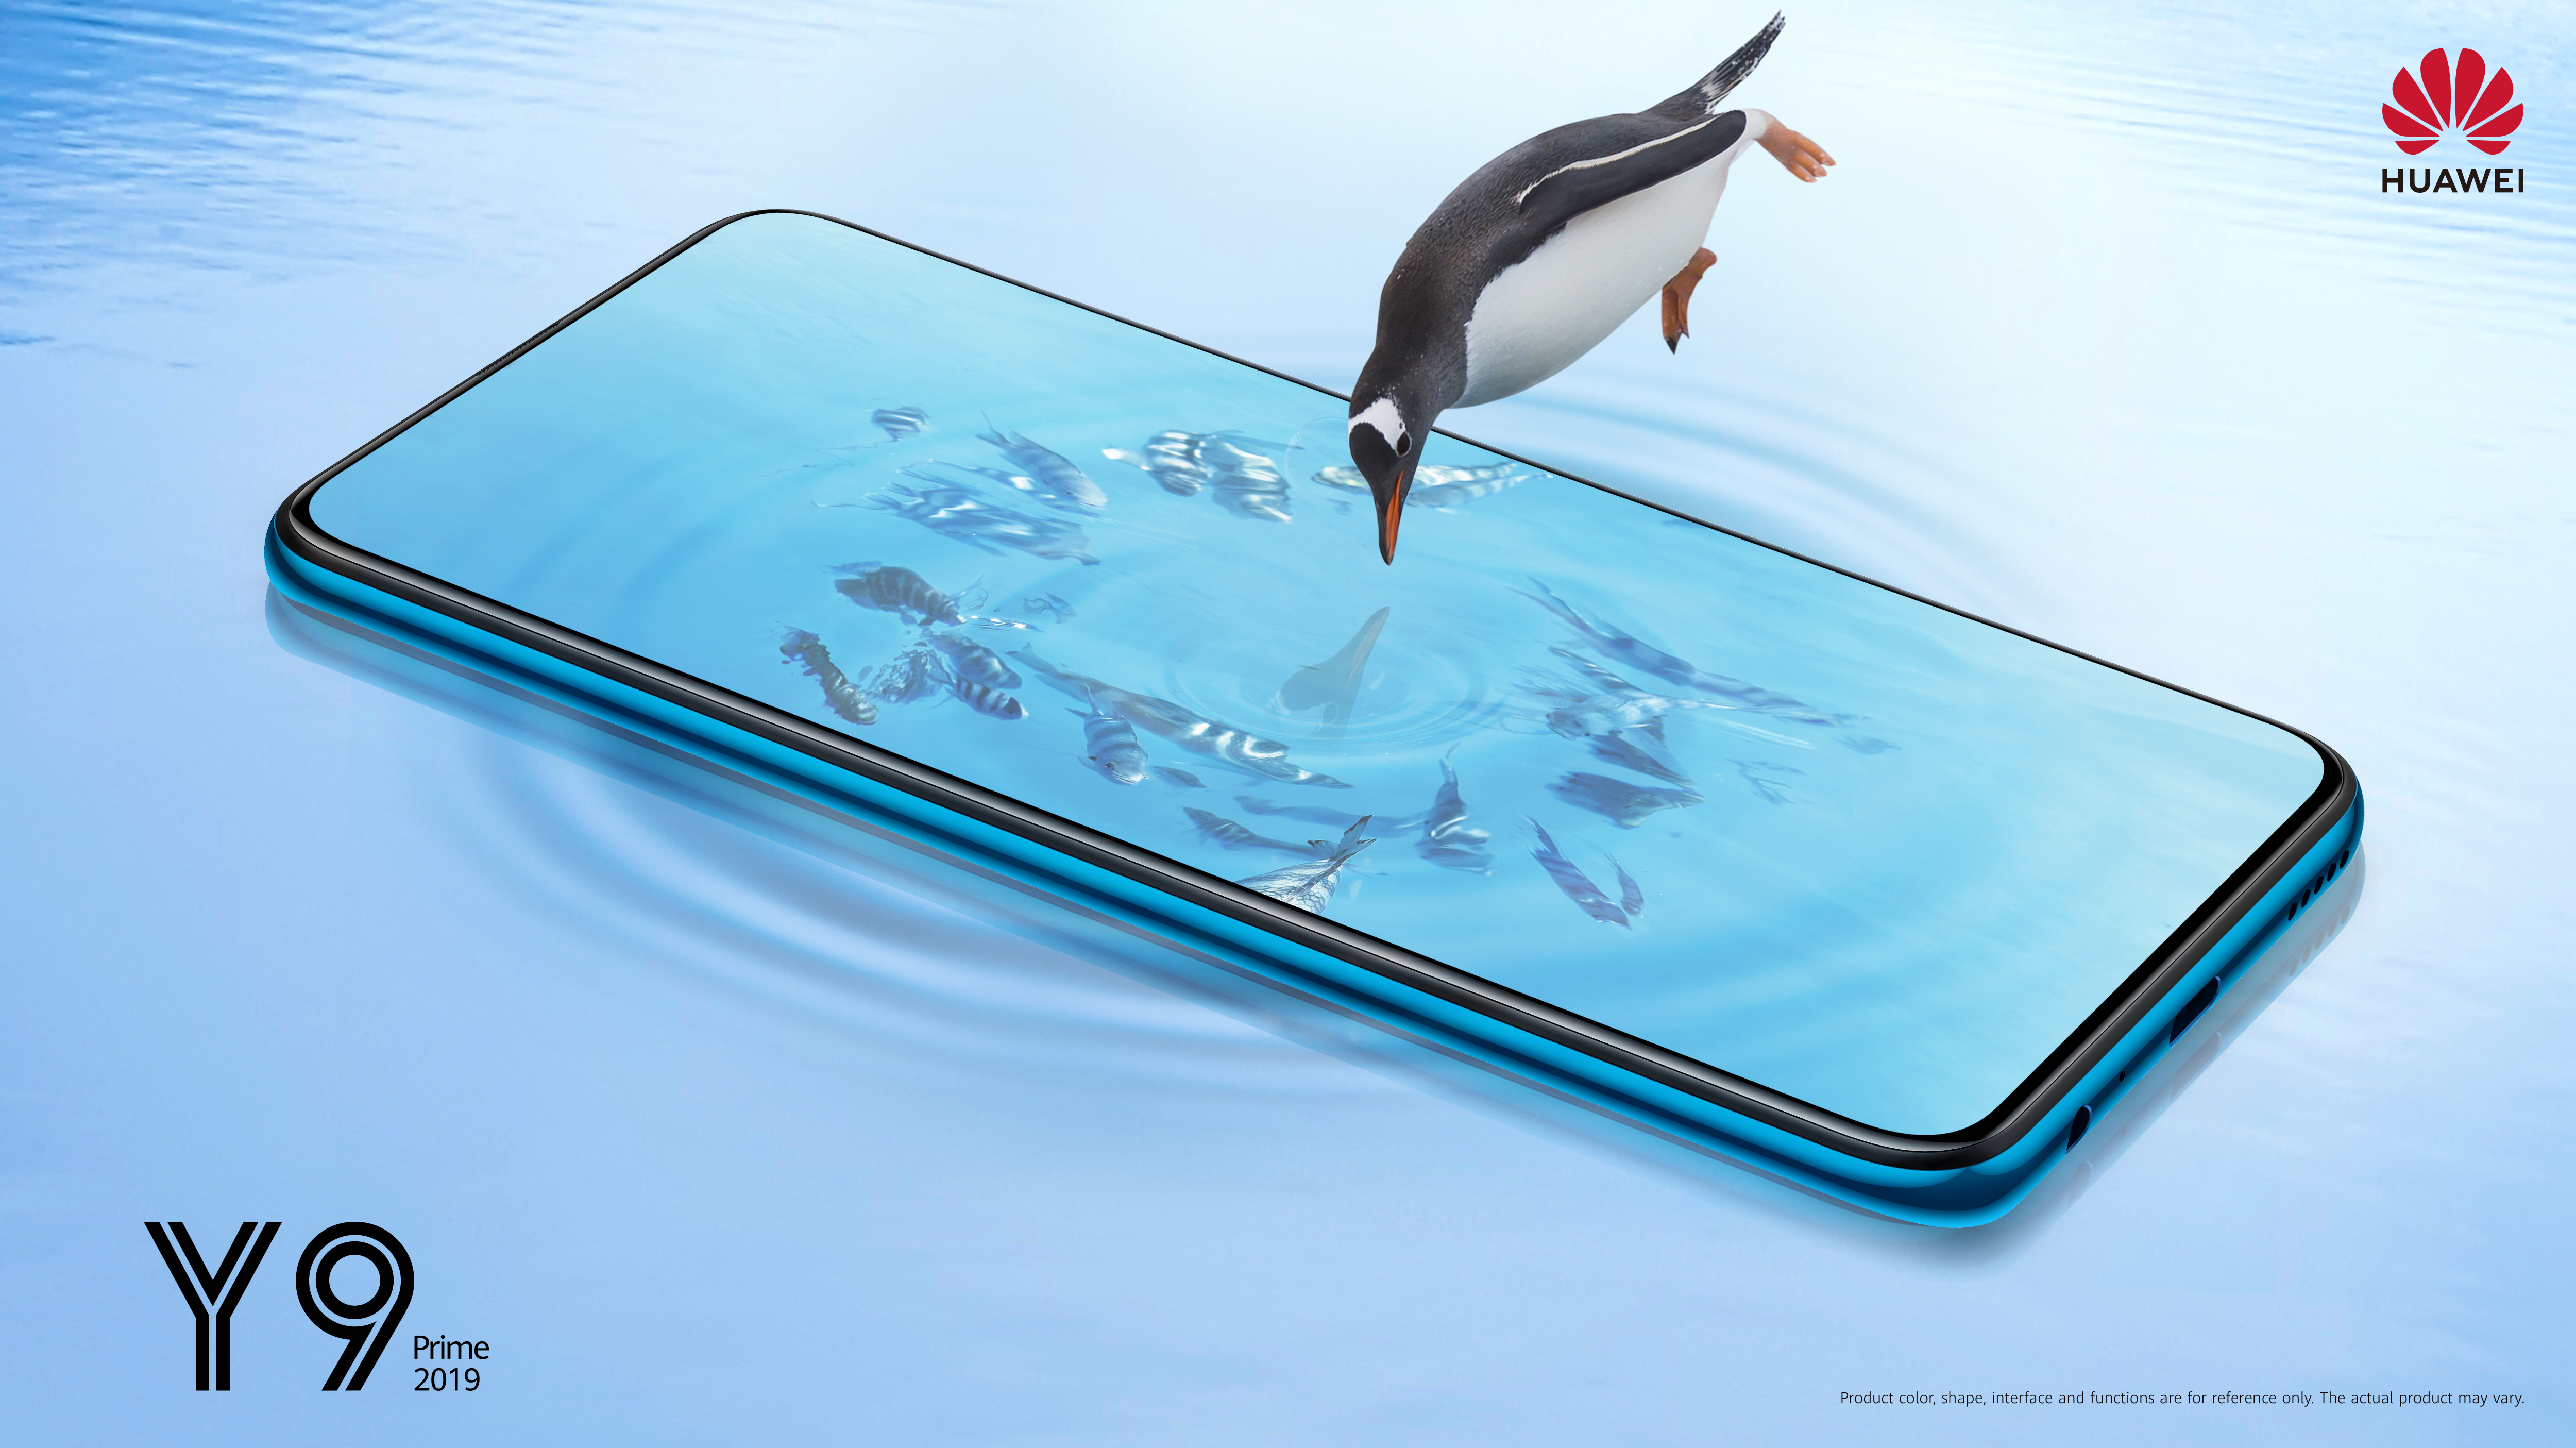 4 Features That Make The HUAWEI Y9 Prime The Best Budget Smartphone